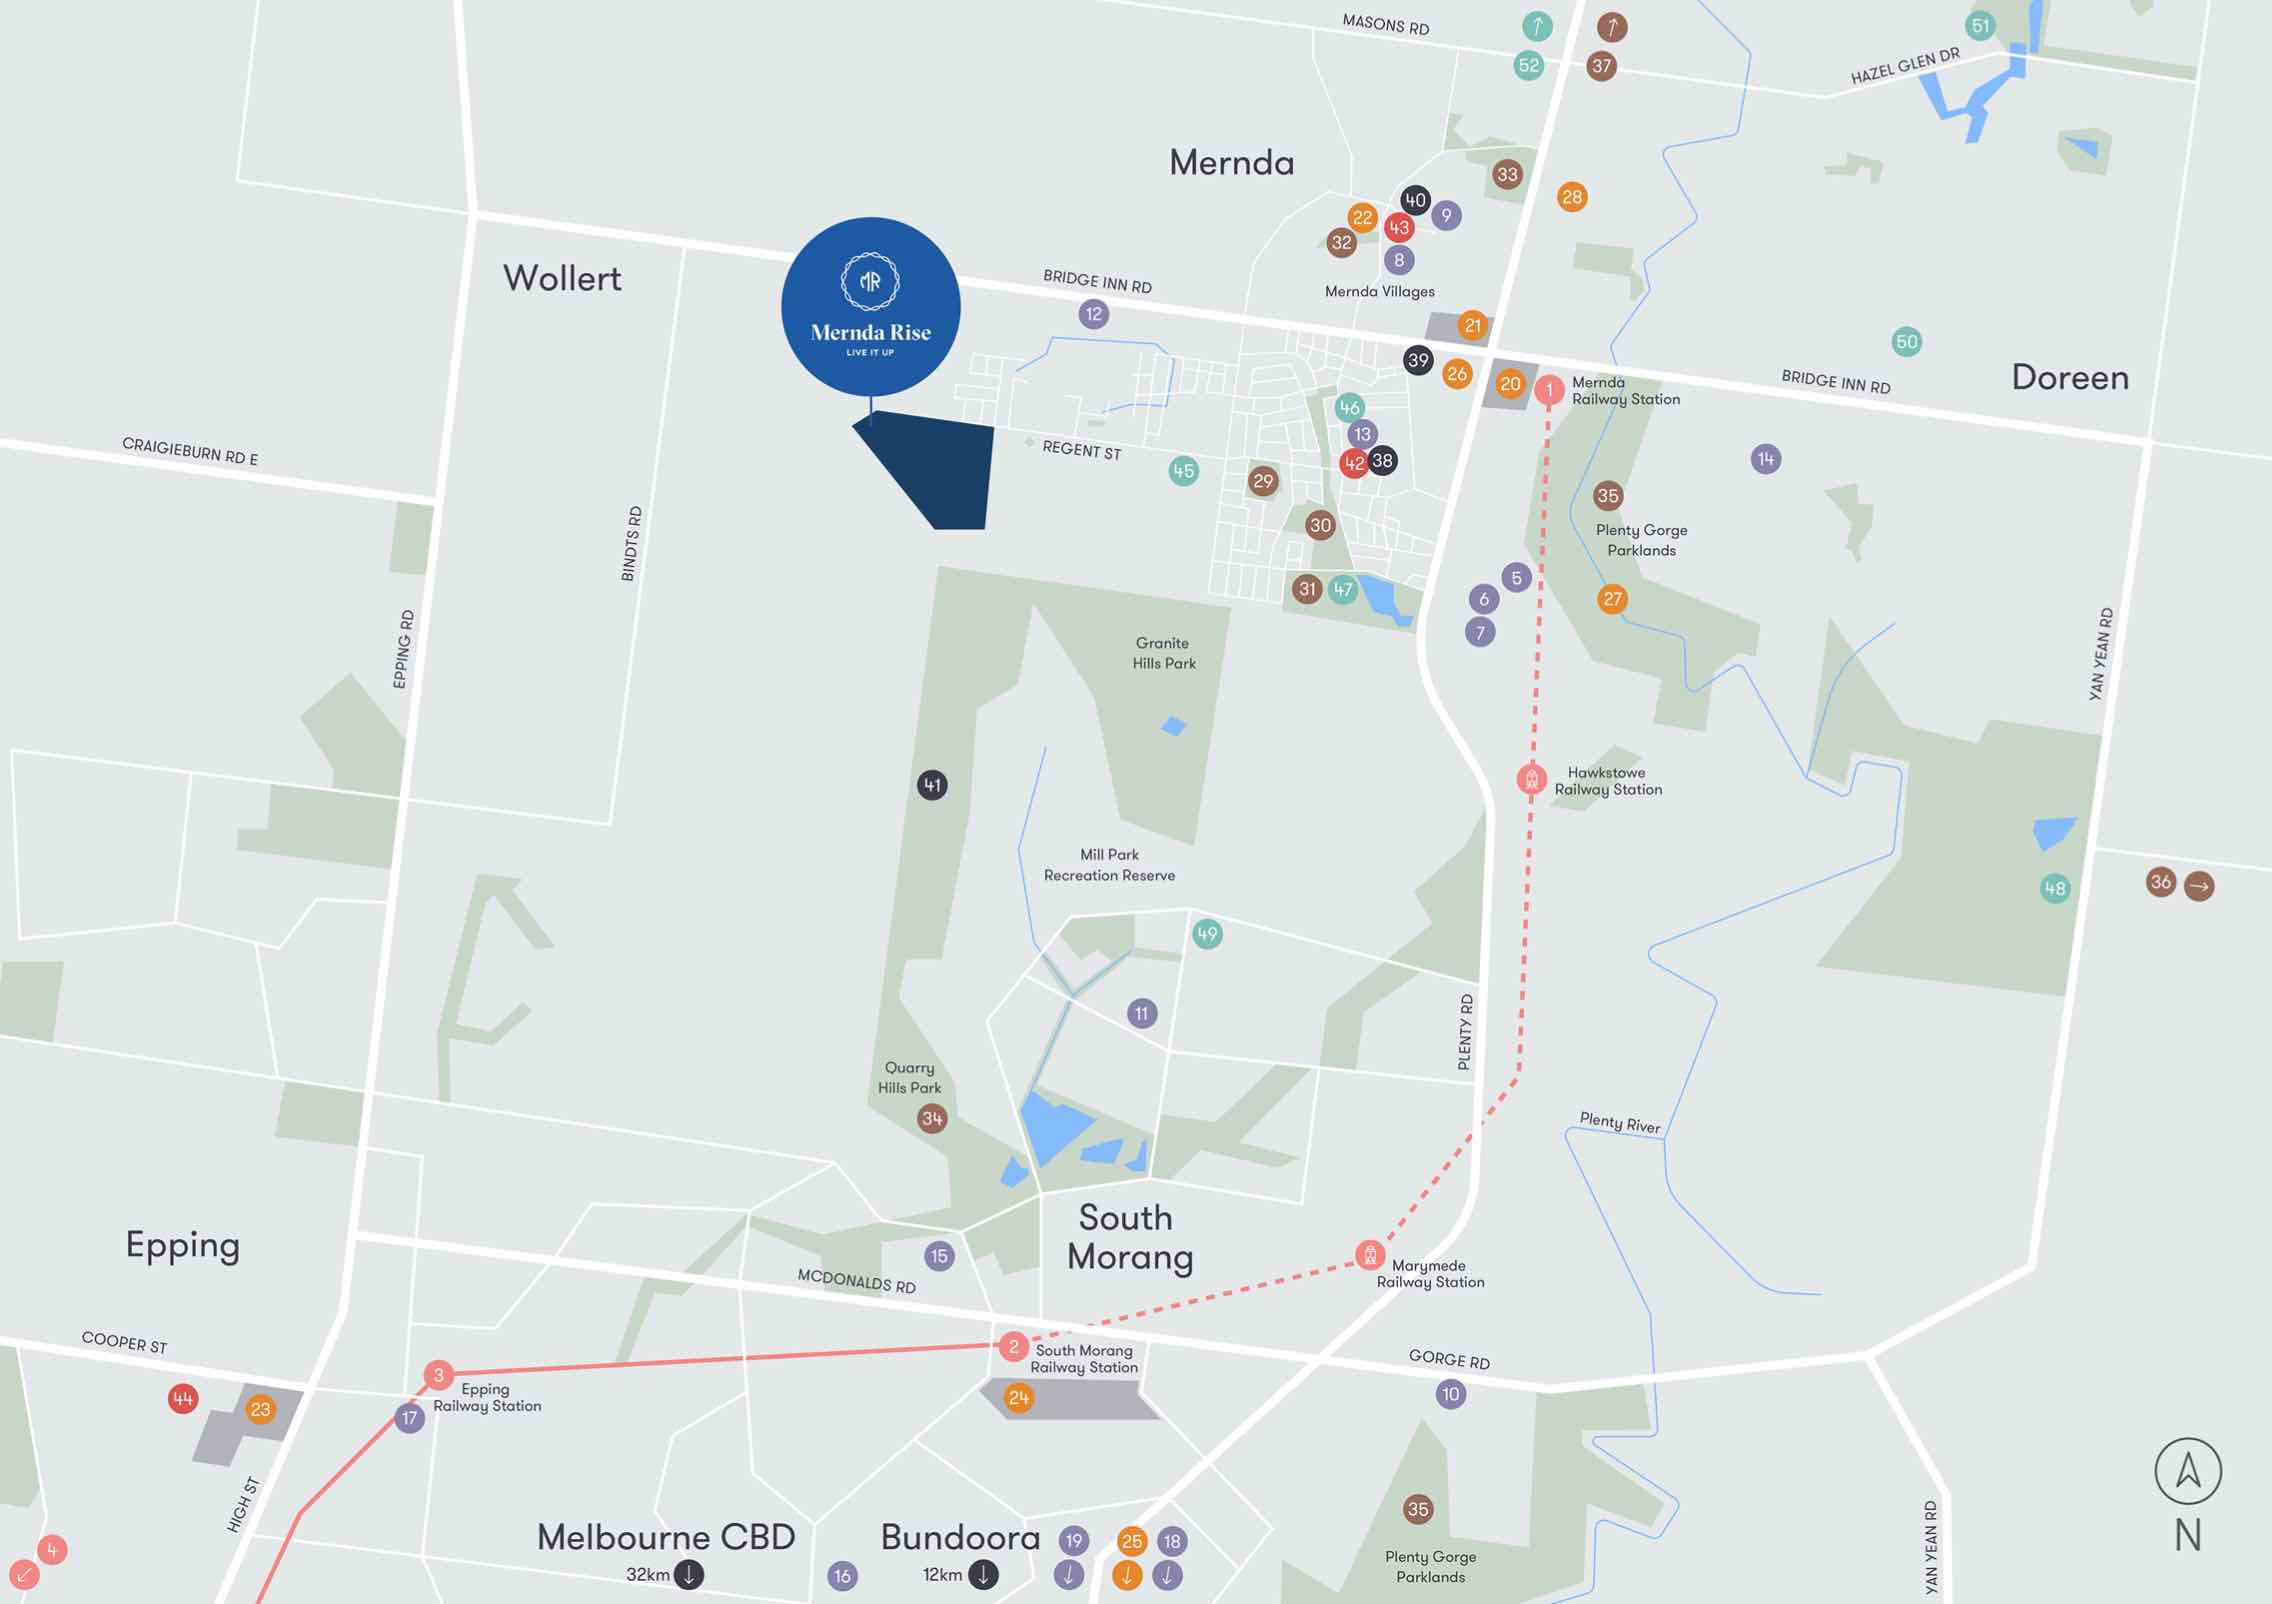 Mernda Rise Location map